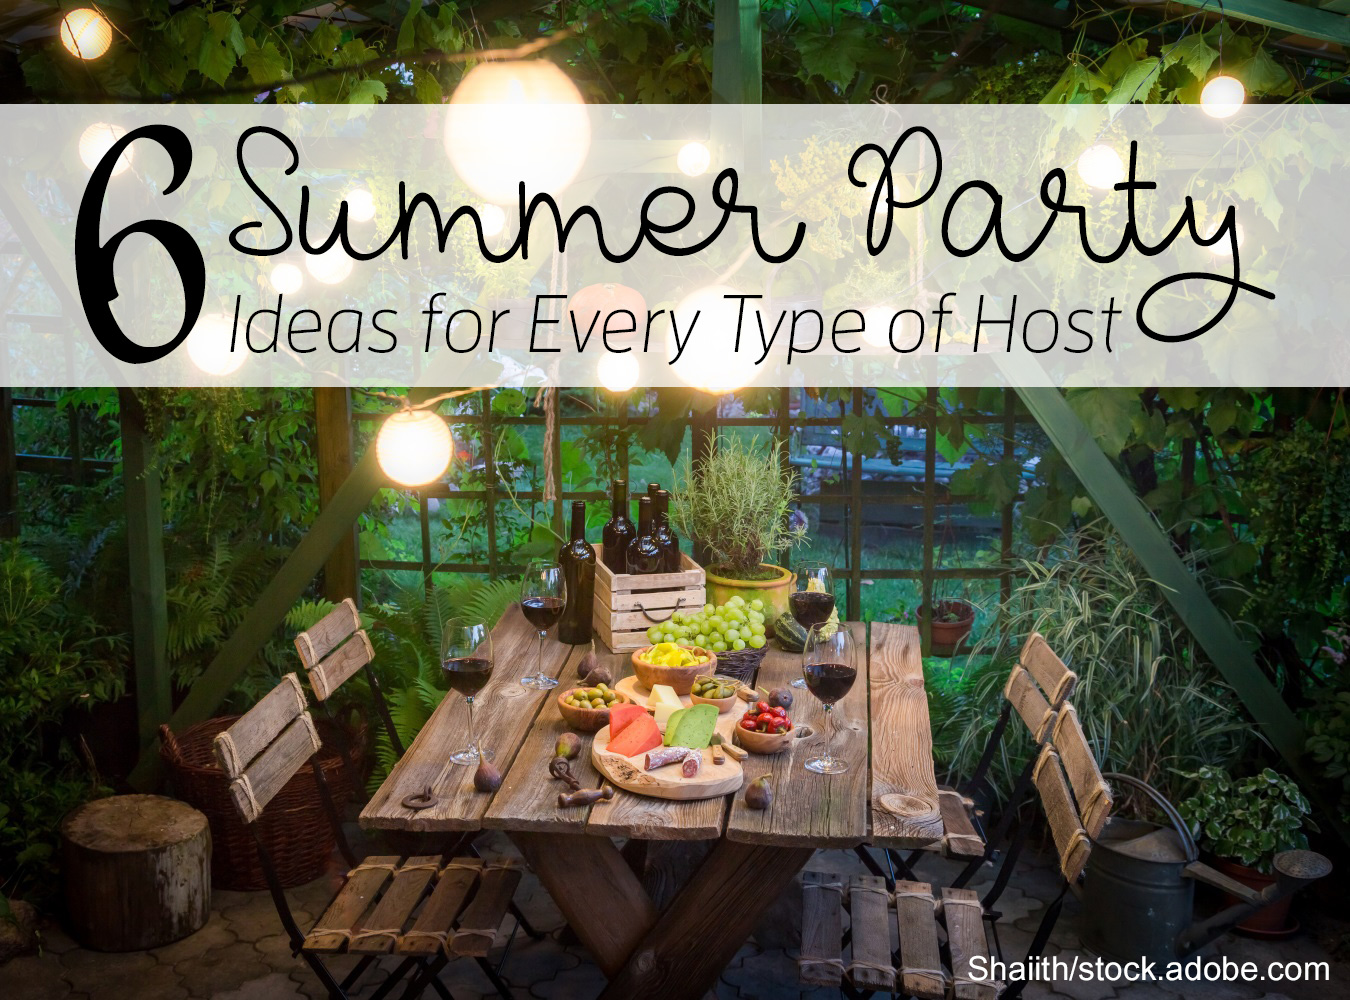 6 Best Summer Garden Party Ideas for Every Type of Host